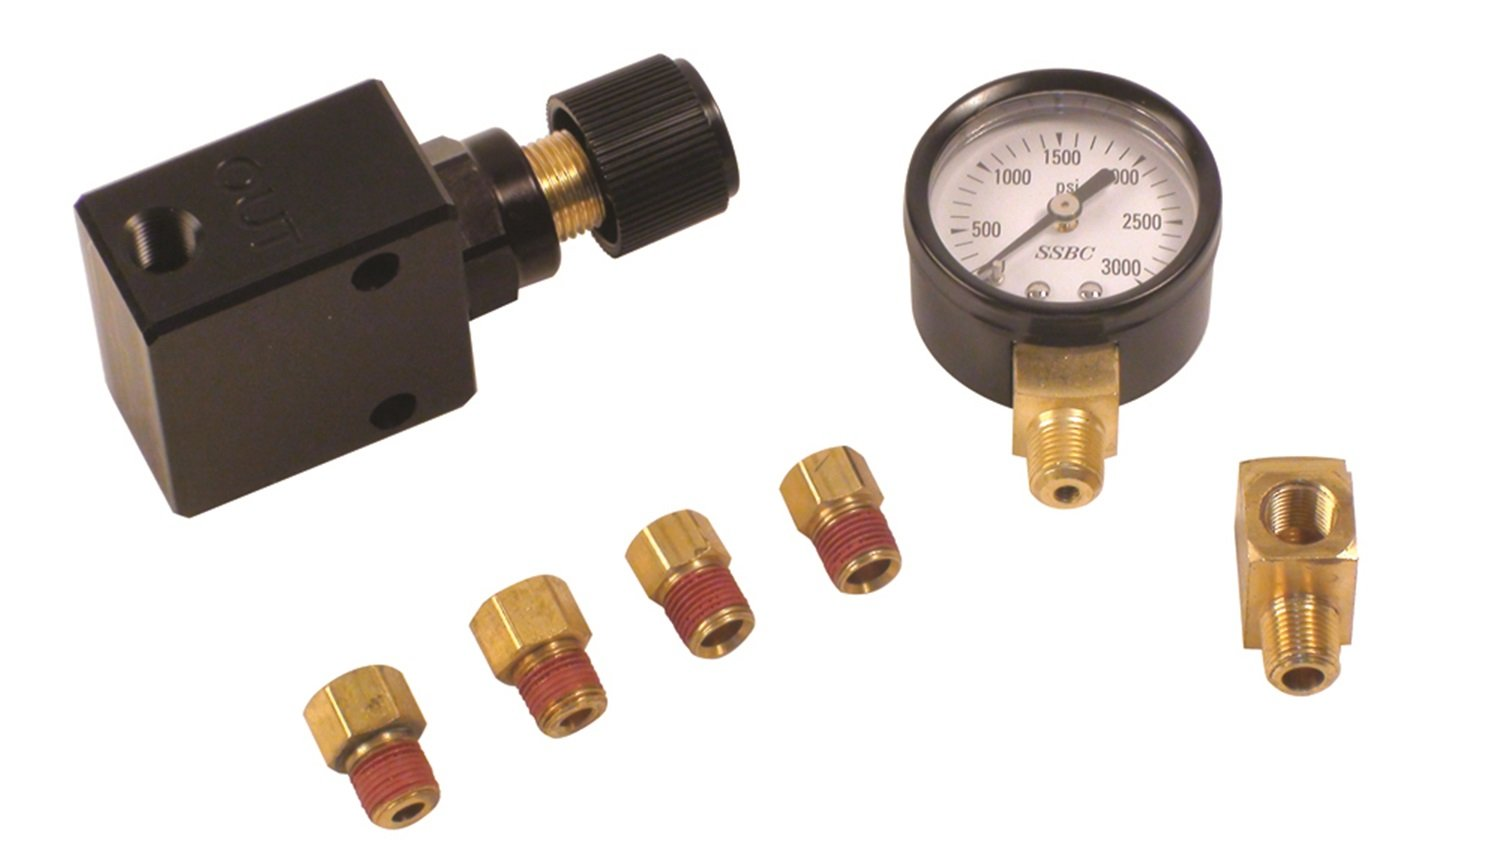 SSBC A0707E Adjustable Proportioning Valve Stainless Steel Brakes